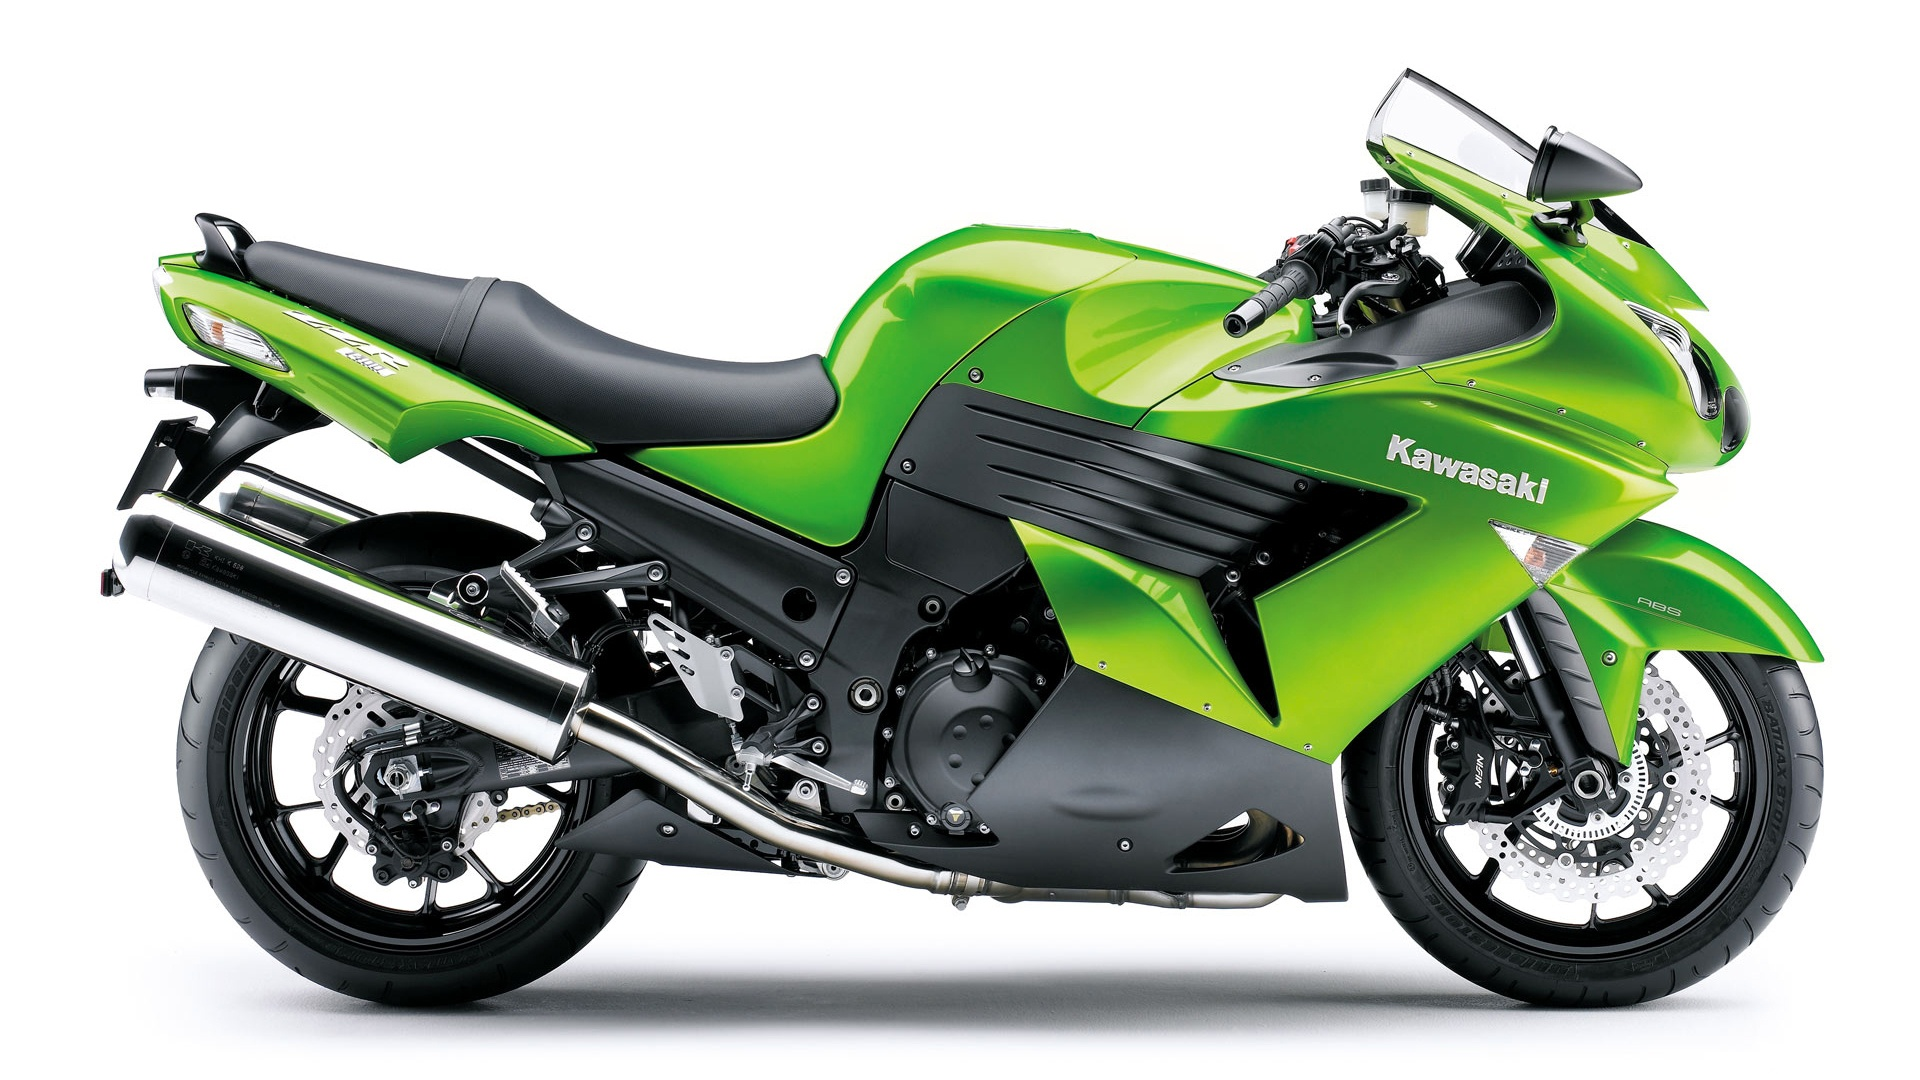 Kawasaki Z1000 Wallpaper Wallpapers For Free Download About 3012